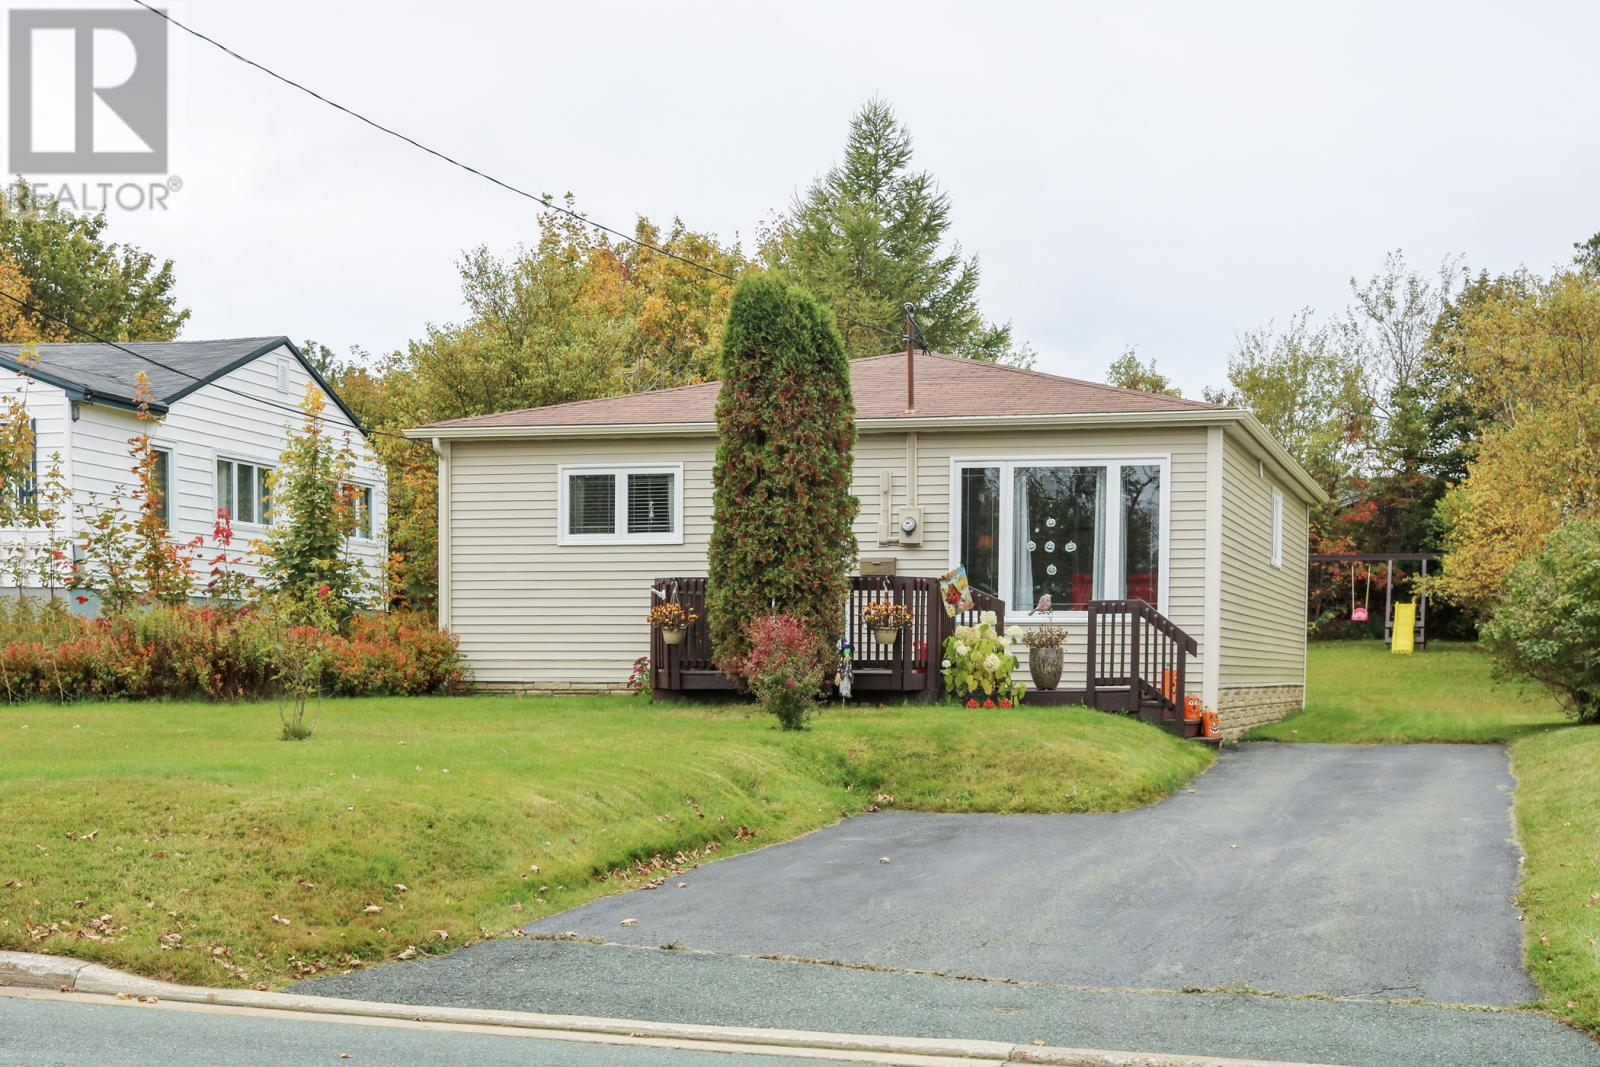 Removed: 16 Firgreen Avenue, Mount Pearl, NL - Removed on 2019-02-22 04:15:22